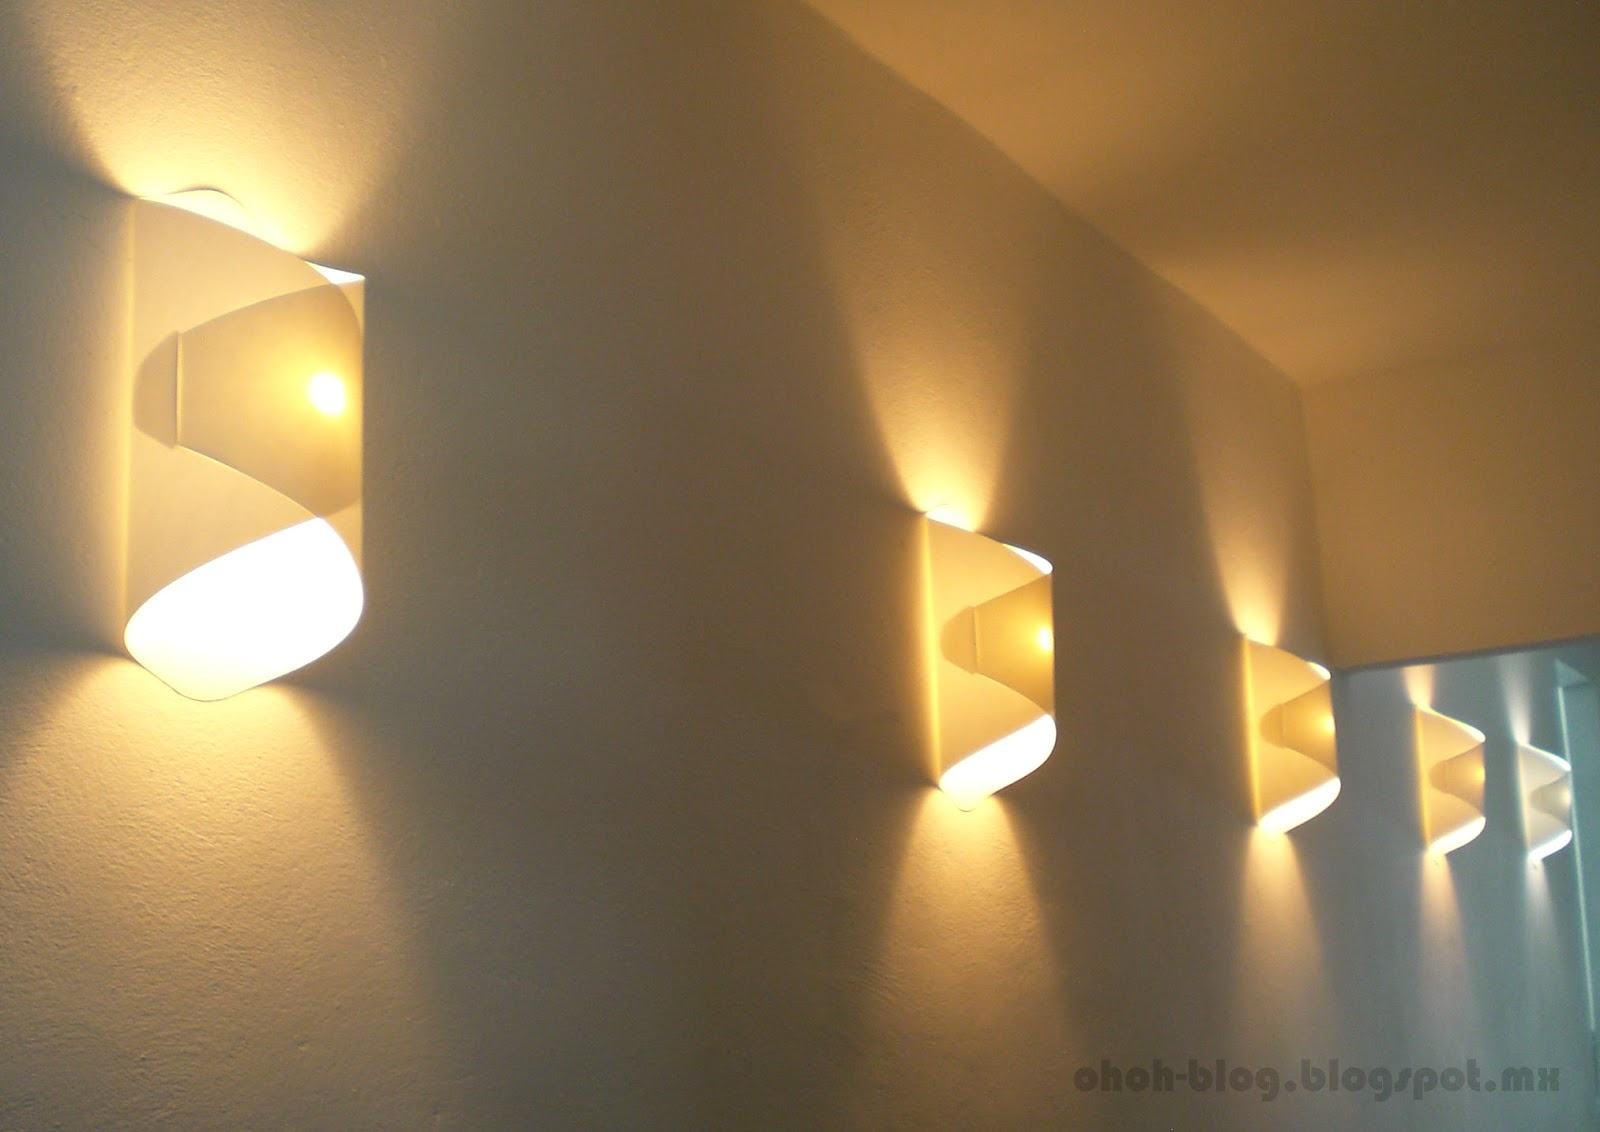 Diy paper lamp lampara de papel ohoh blog - Lamparas de techo hechas en casa ...